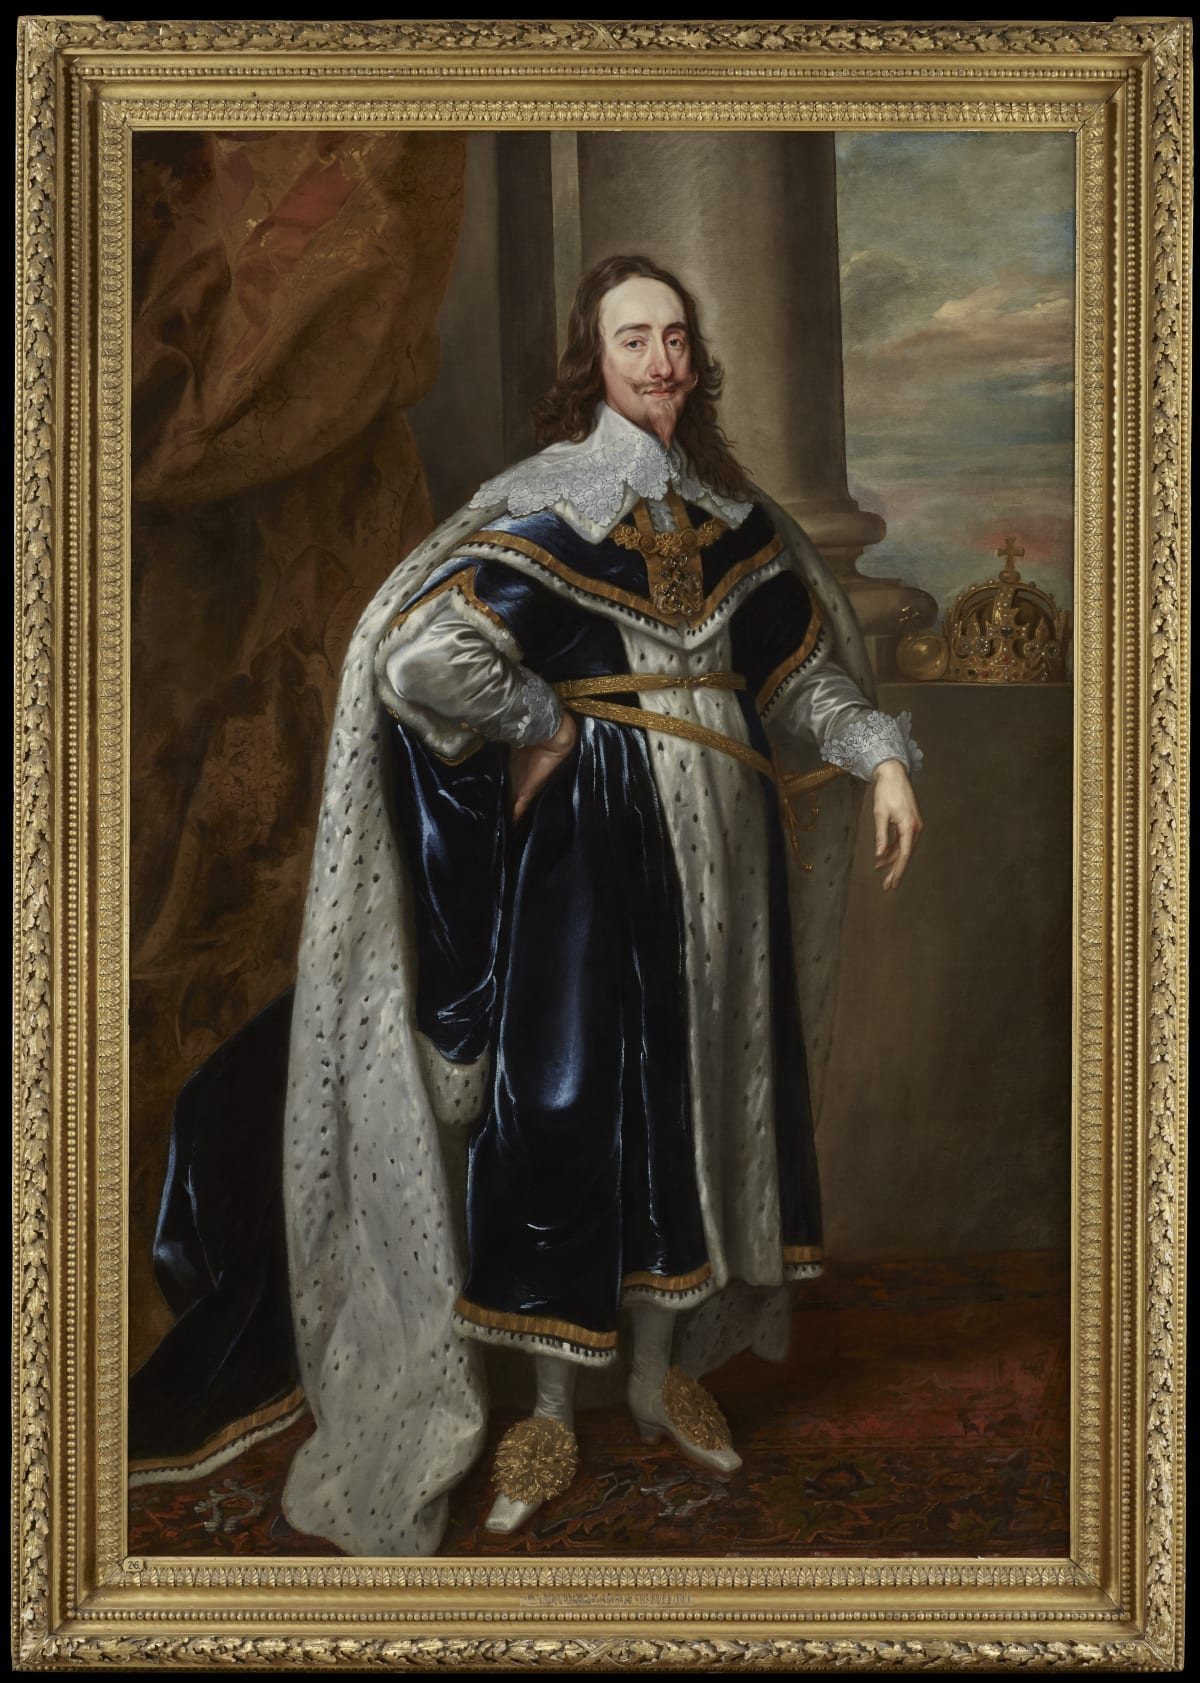 Studio of Sir Anthony van Dyck (1599 – 1641) King Charles I (1600 - 1649) in coronation robes (one of a pair), c.1636-40s Oil on canvas 86 x 56 in. (223 x 149 cm.)